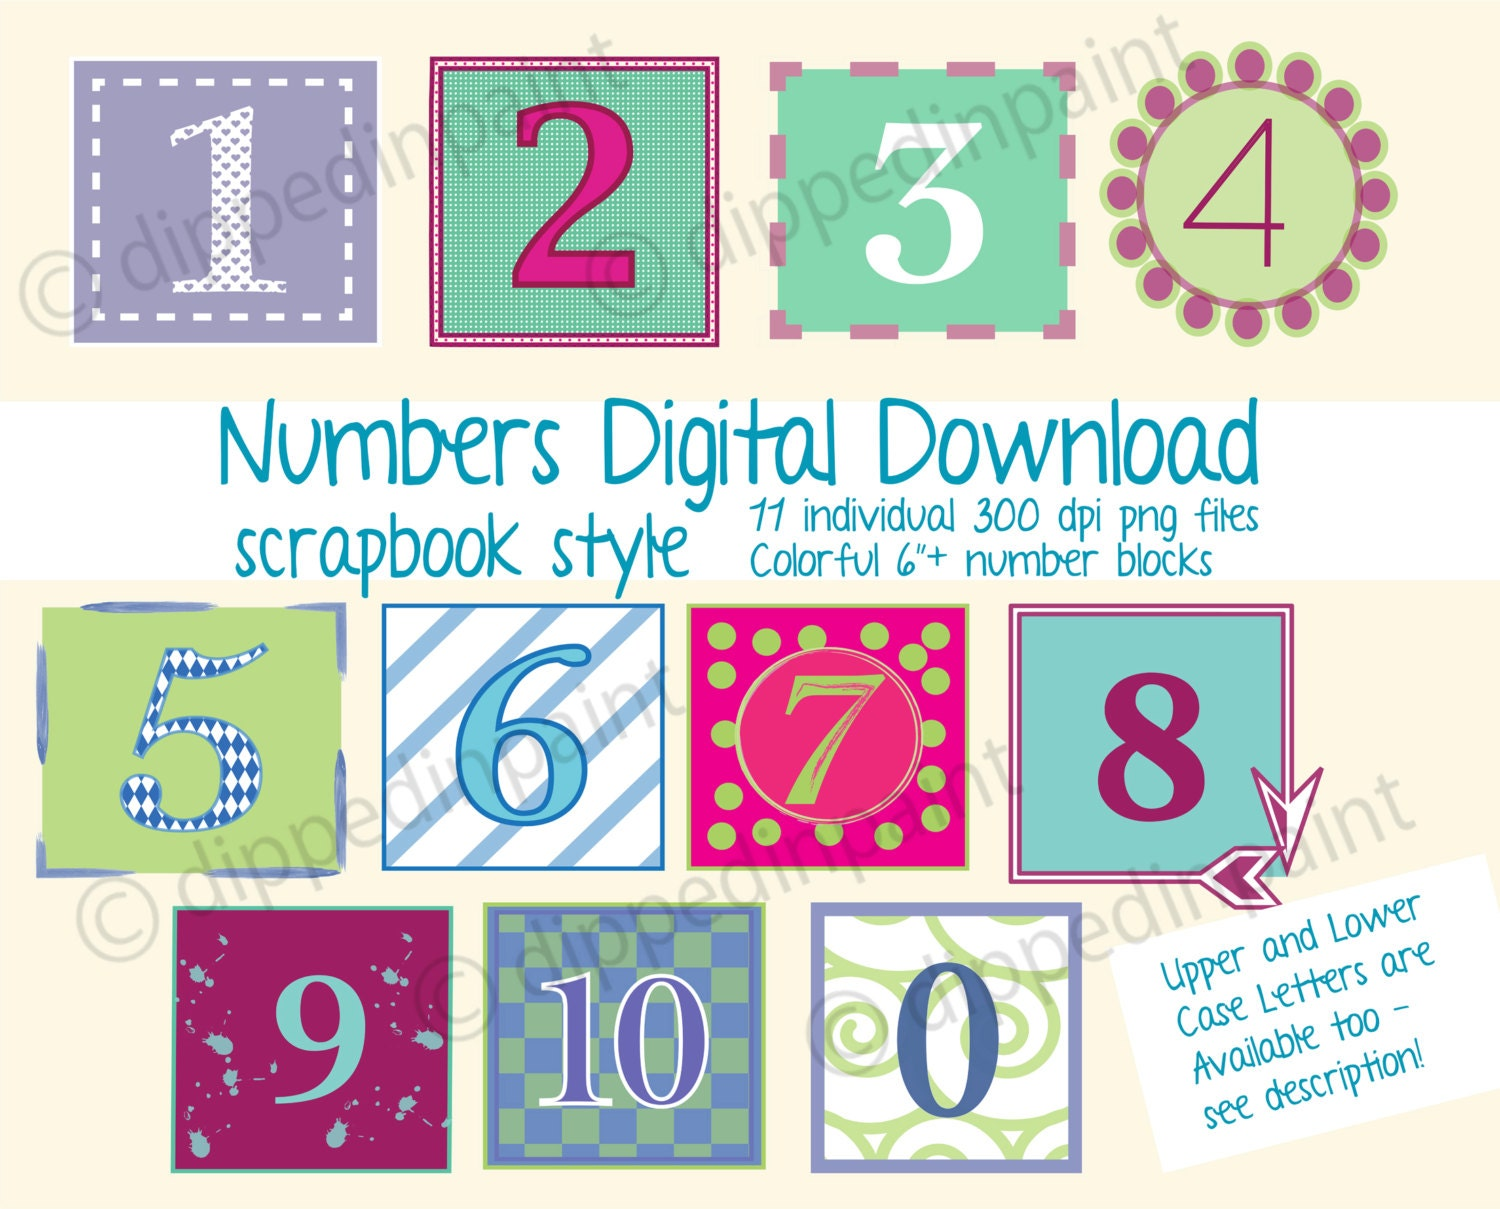 numbers png files 6 inch colorful number blocks graphic art